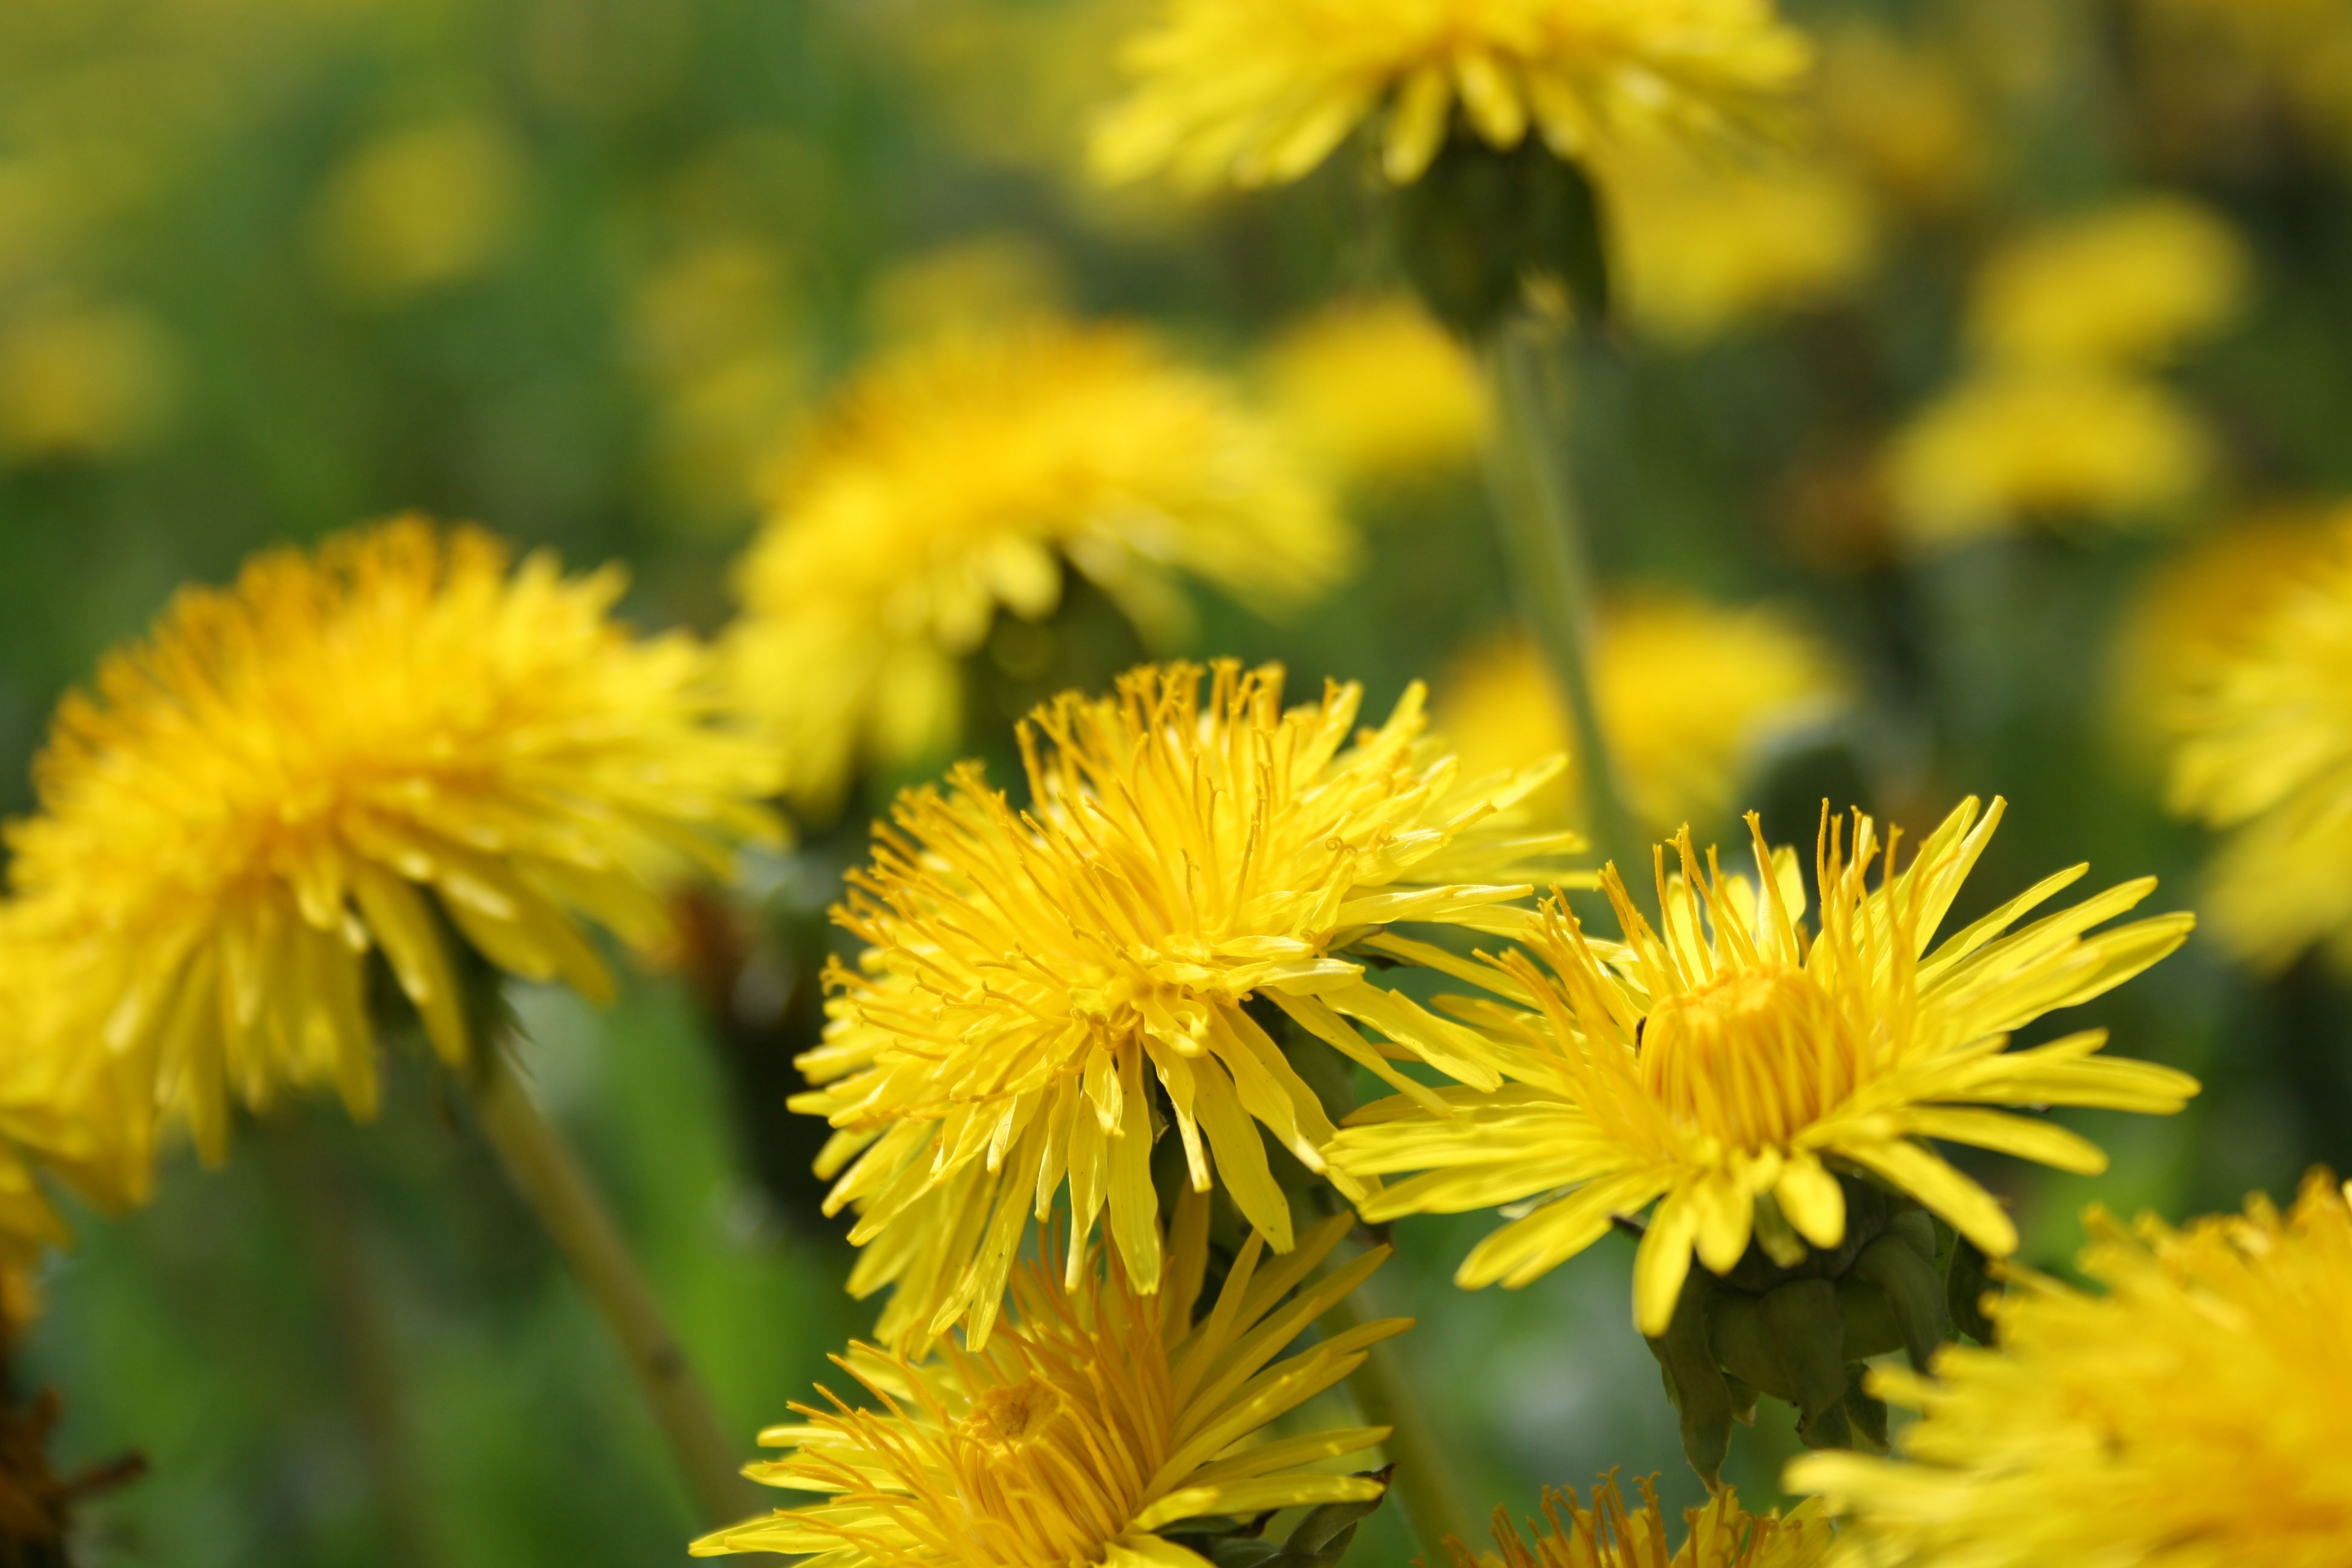 Tyres From Flowers Experts Say By All Means With Images Dandelion Benefits Dandelion Dandelion Tea